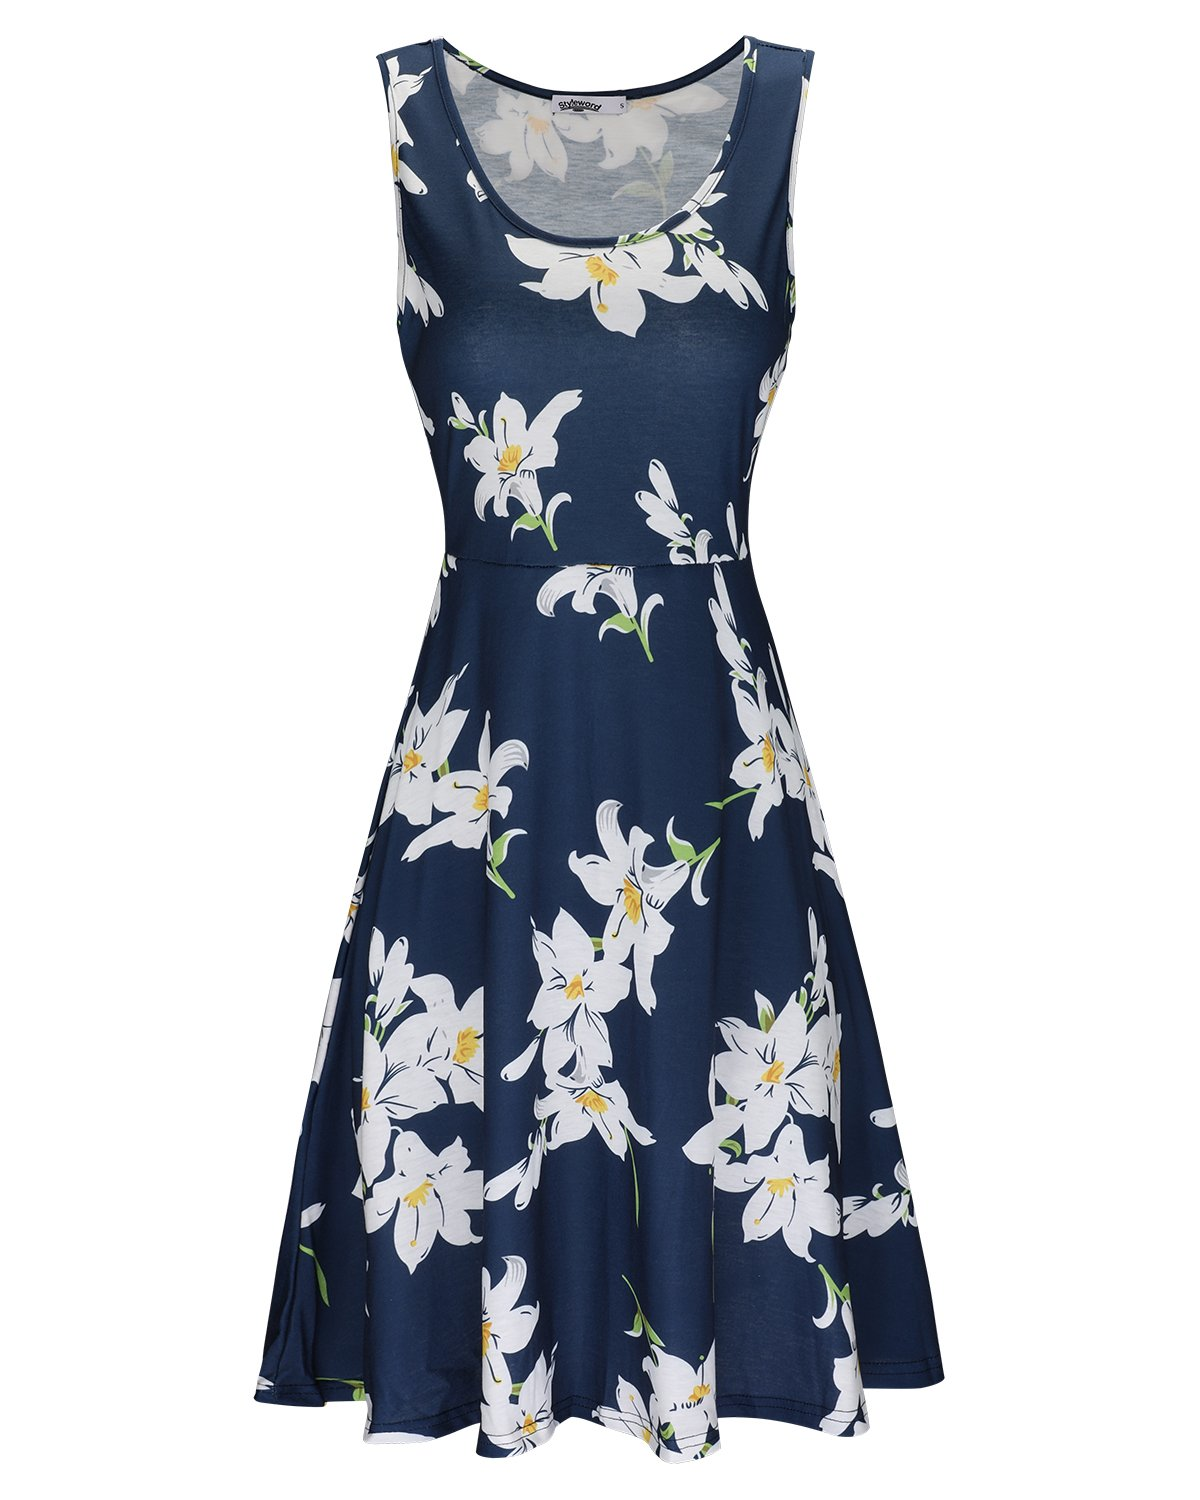 STYLEWORD Women's Sleeveless Summer Casual Floral Dress(Floral001,XXL)